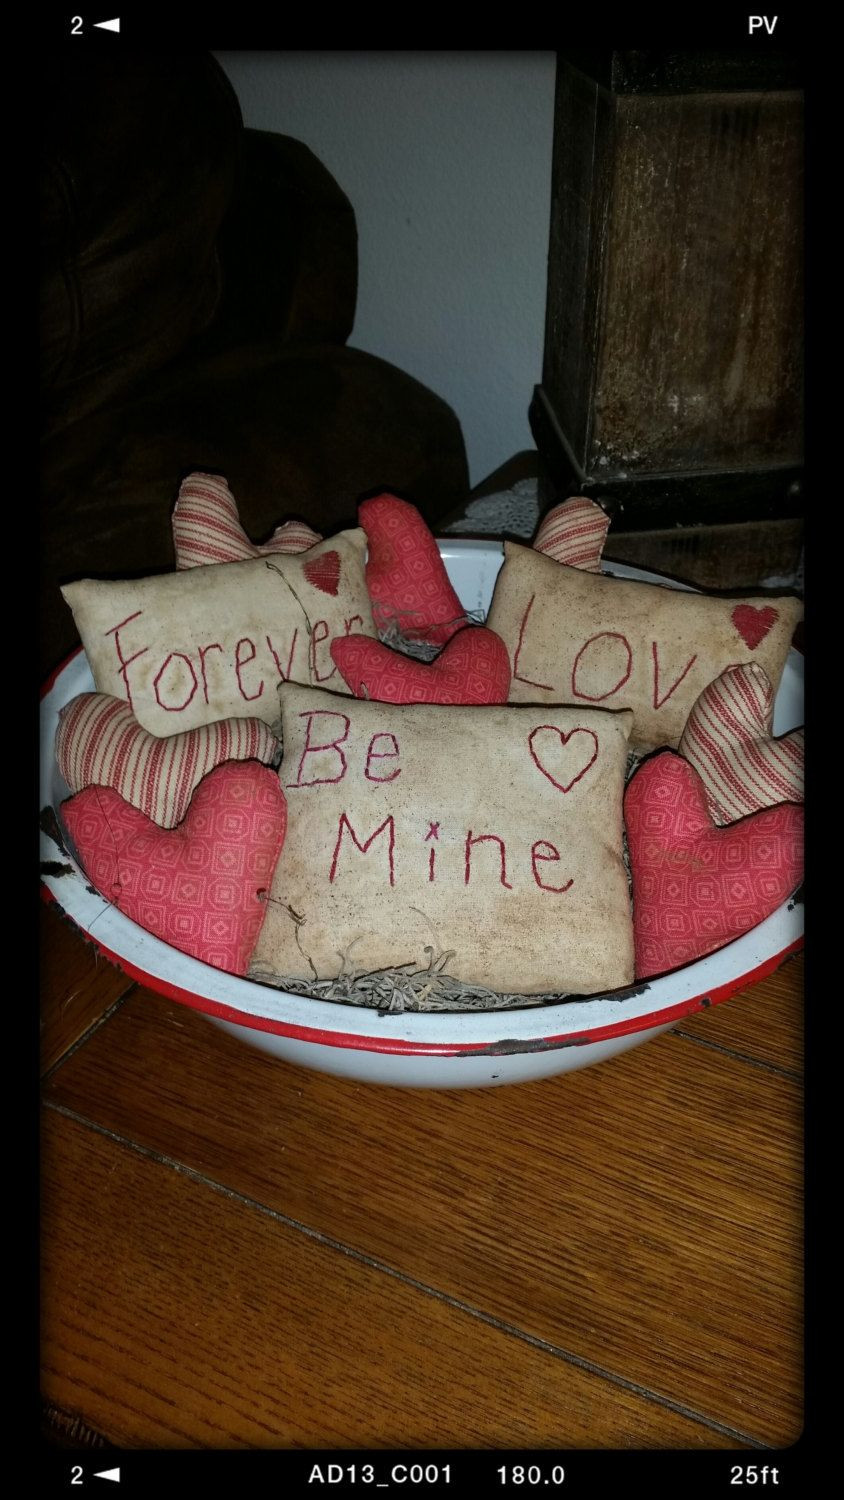 valentine vase fillers of primitive valentin pillow tucks heart bowl fillers valentines day for primitive valentin pillow tucks heart bowl fillers valentines day decor ofg faap primitive valentine ornies prim valentine tucks by nanasgrungyprims